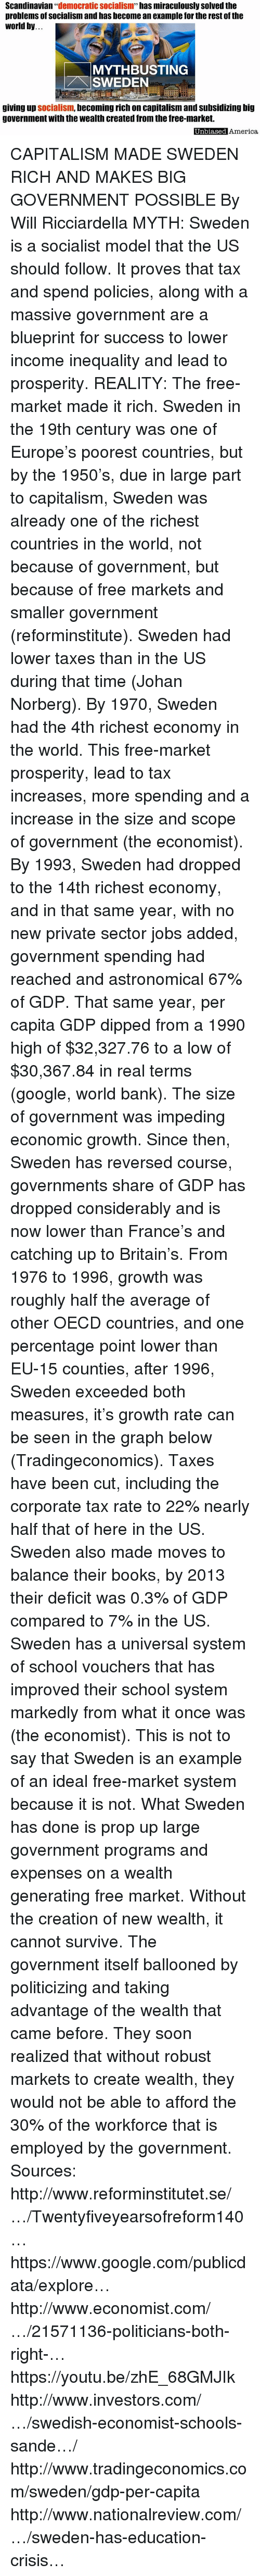 """Scoping: Scandinavian """"democratic Socialism"""" has miraculously solved the  problems of Socialism and has become an example for the rest of the  world by.  MYTH BUSTING  SWEDEN  giving up Socialism,  becoming rich on capitalism and subsidizing big  government with the wealth created from the free-market.  Unbiased  America, CAPITALISM MADE SWEDEN RICH AND MAKES BIG GOVERNMENT POSSIBLE By Will Ricciardella   MYTH: Sweden is a socialist model that the US should follow. It proves that tax and spend policies, along with a massive government are a blueprint for success to lower income inequality and lead to prosperity.  REALITY: The free-market made it rich.  Sweden in the 19th century was one of Europe's poorest countries, but by the 1950's, due in large part to capitalism, Sweden was already one of the richest countries in the world, not because of government, but because of free markets and smaller government (reforminstitute). Sweden had lower taxes than in the US during that time (Johan Norberg).  By 1970, Sweden had the 4th richest economy in the world. This free-market prosperity, lead to tax increases, more spending and a increase in the size and scope of government (the economist). By 1993, Sweden had dropped to the 14th richest economy, and in that same year, with no new private sector jobs added, government spending had reached and astronomical 67% of GDP.  That same year, per capita GDP dipped from a 1990 high of $32,327.76 to a low of $30,367.84 in real terms (google, world bank). The size of government was impeding economic growth.  Since then, Sweden has reversed course, governments share of GDP has dropped considerably and is now lower than France's and catching up to Britain's.  From 1976 to 1996, growth was roughly half the average of other OECD countries, and one percentage point lower than EU-15 counties, after 1996, Sweden exceeded both measures, it's growth rate can be seen in the graph below (Tradingeconomics).  Taxes have been cut, including the cor"""